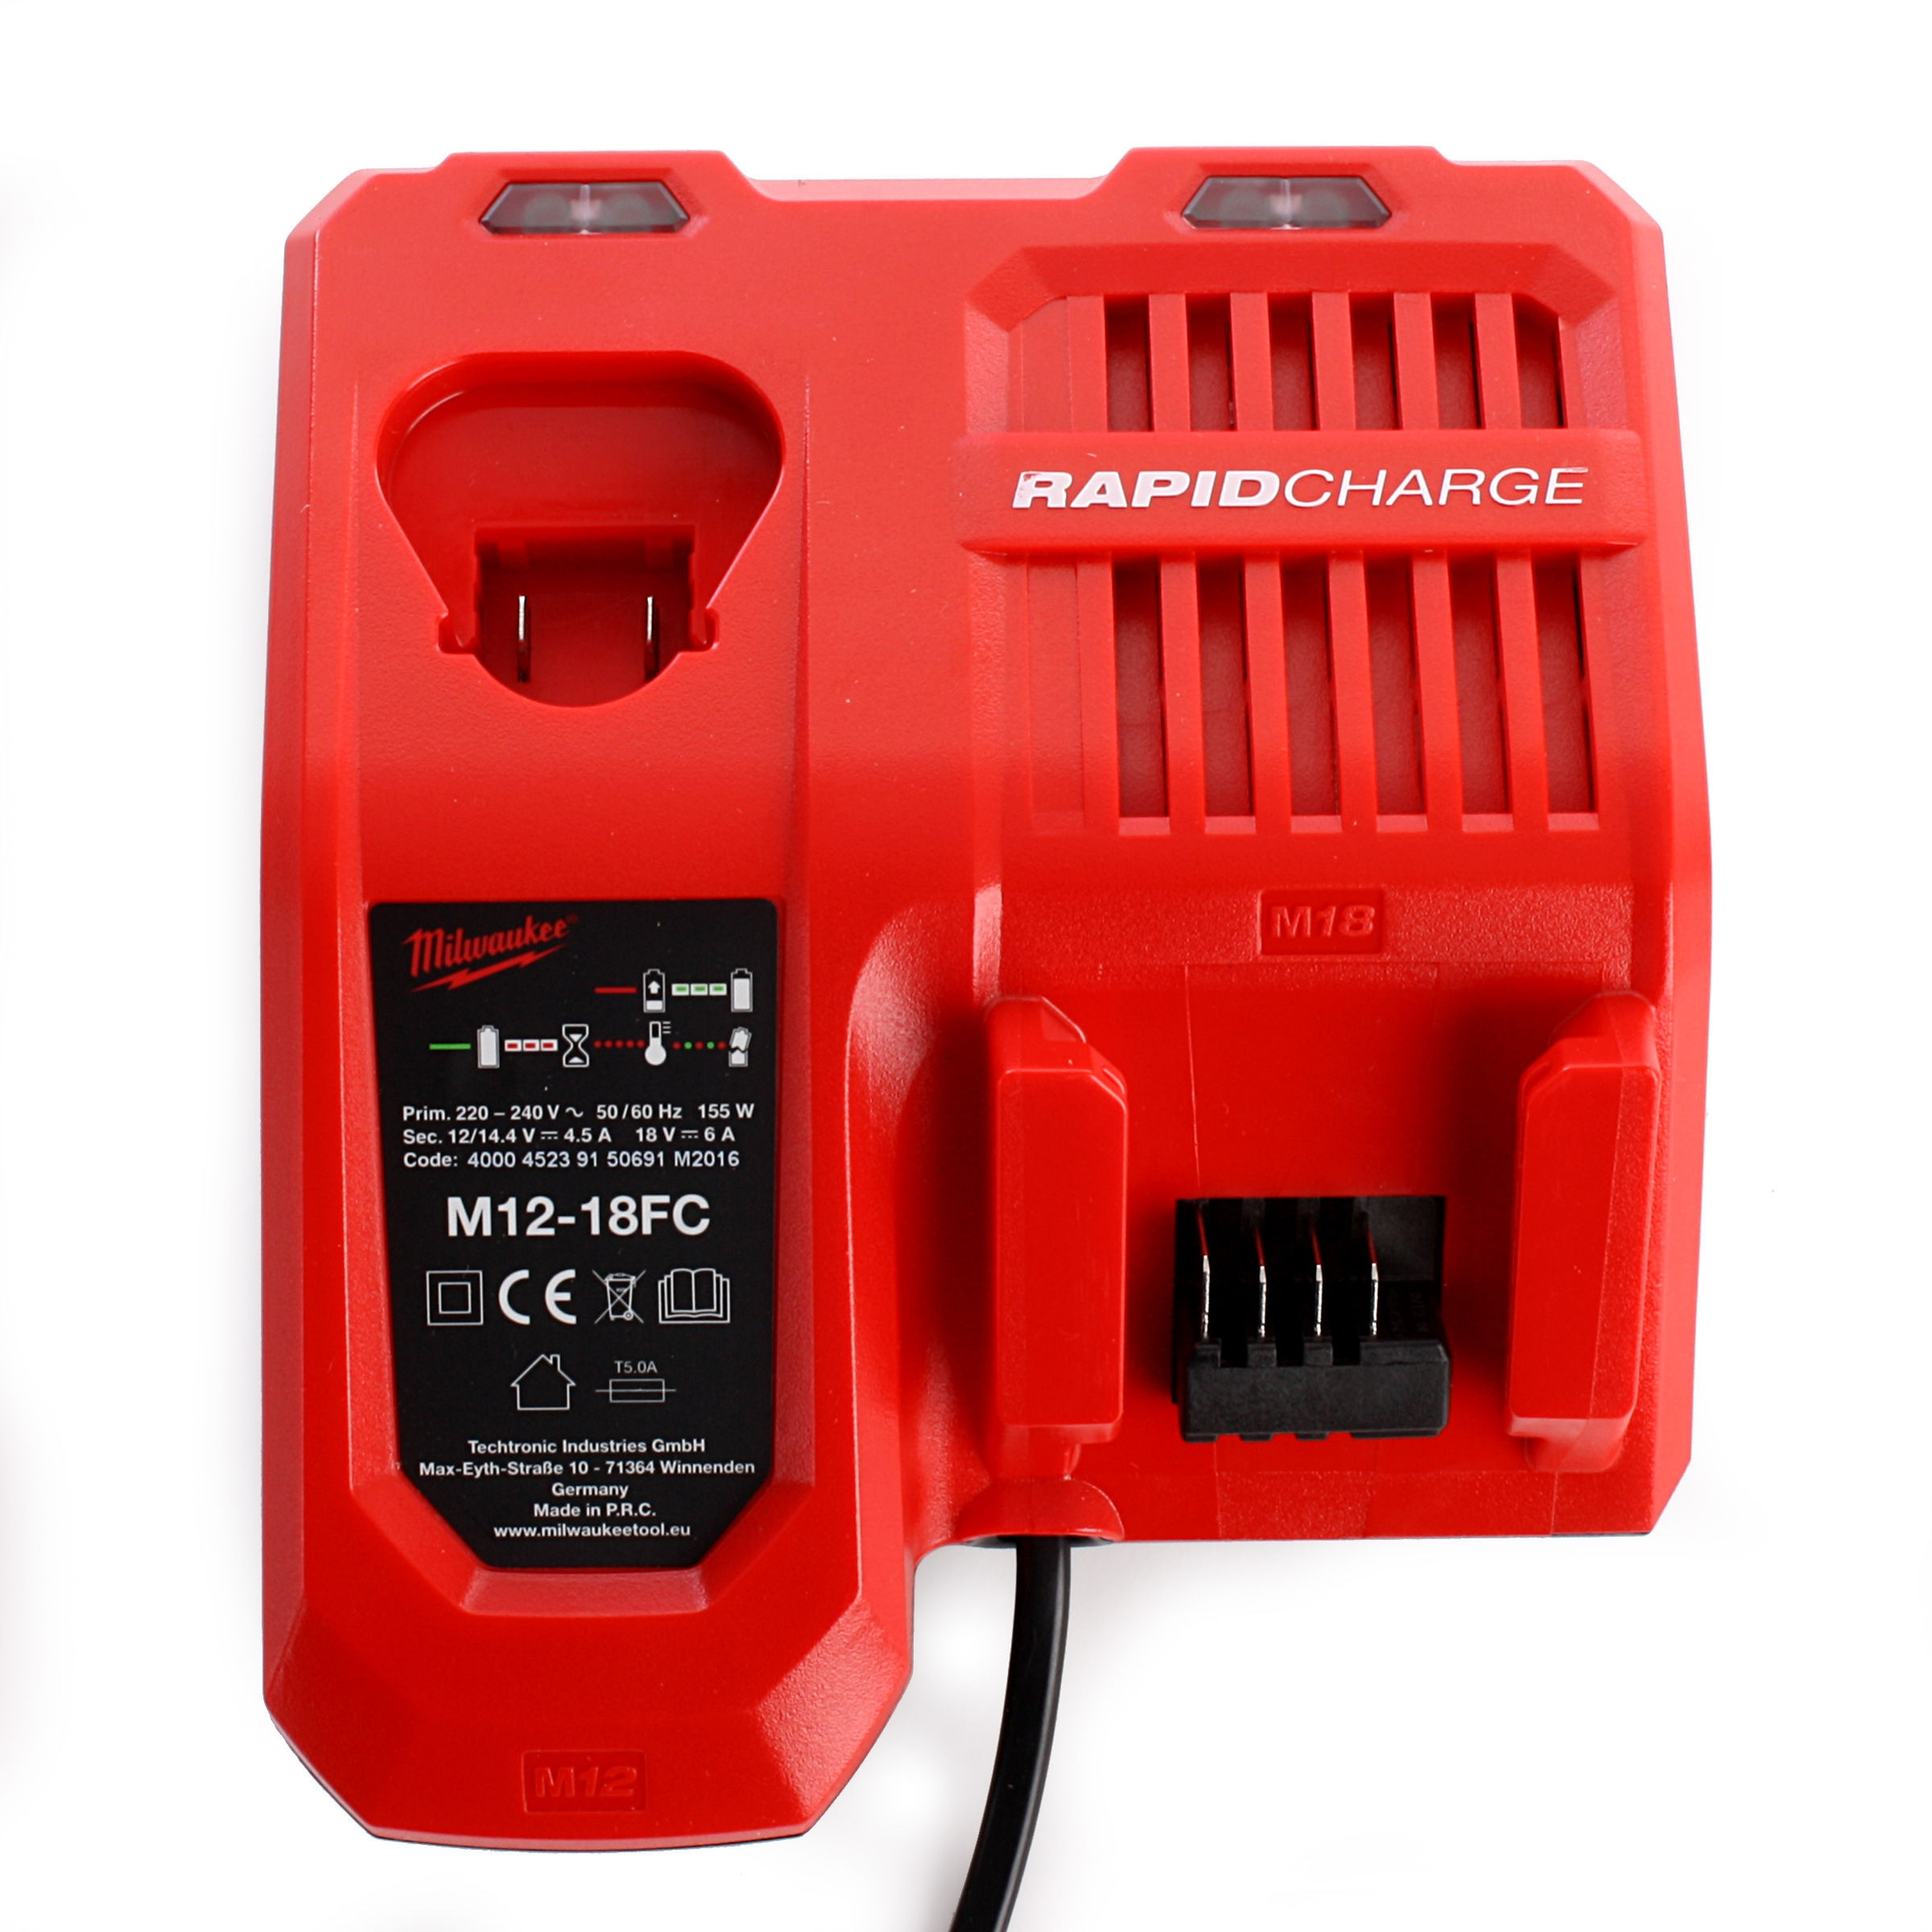 M12 - M18 Fast Charger